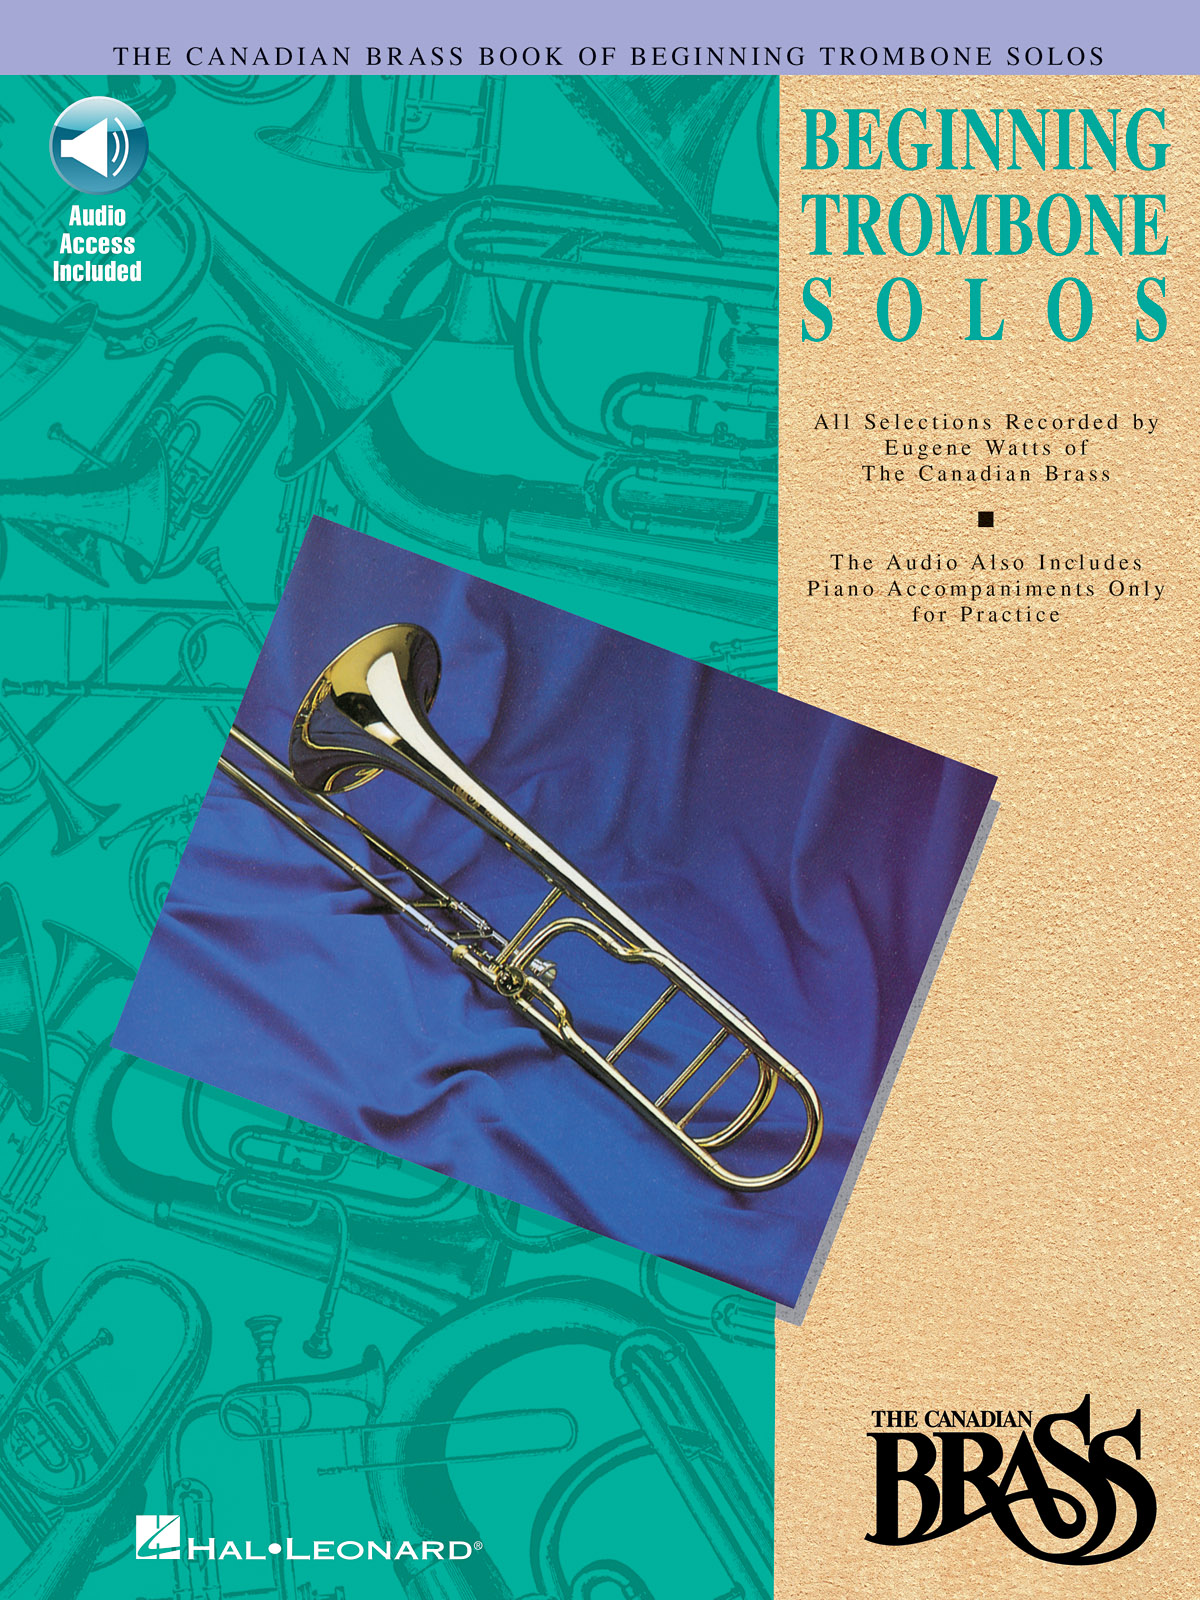 The Canadian Brass: Canadian Brass Book Of Beginning Trombone Solos: Trombone